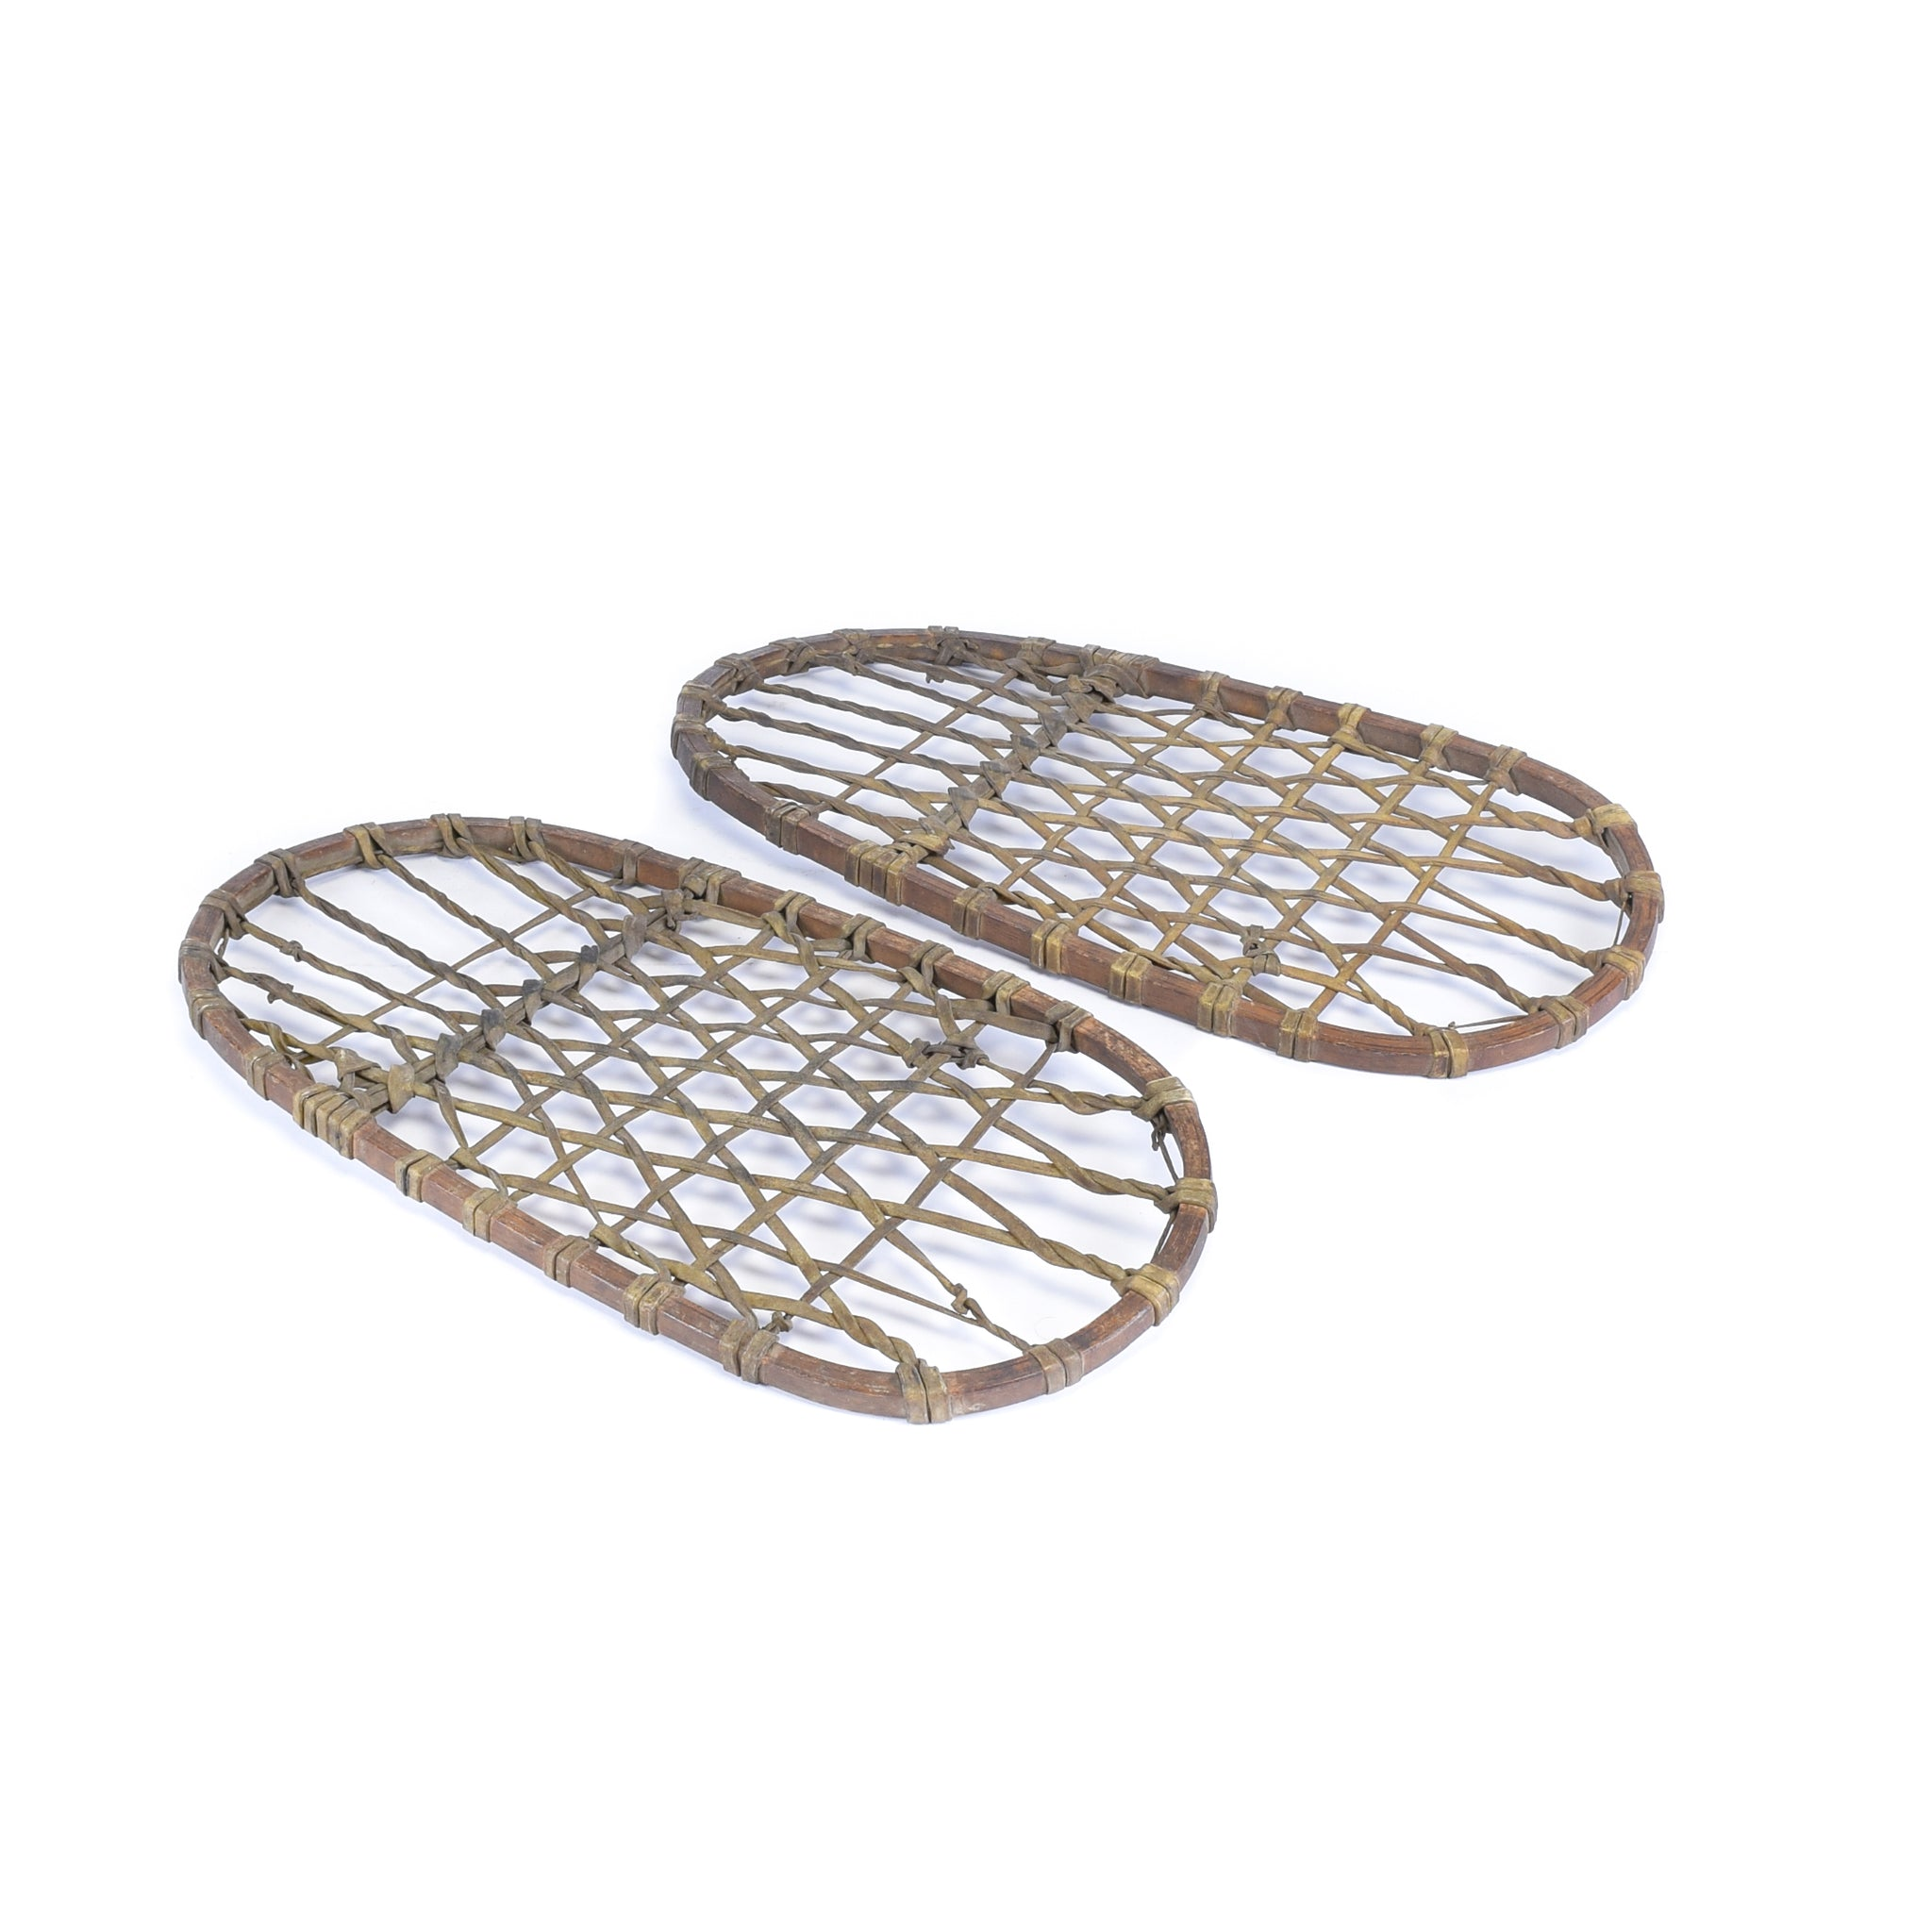 Algonquin Snowshoes northeast, snowshoes-native